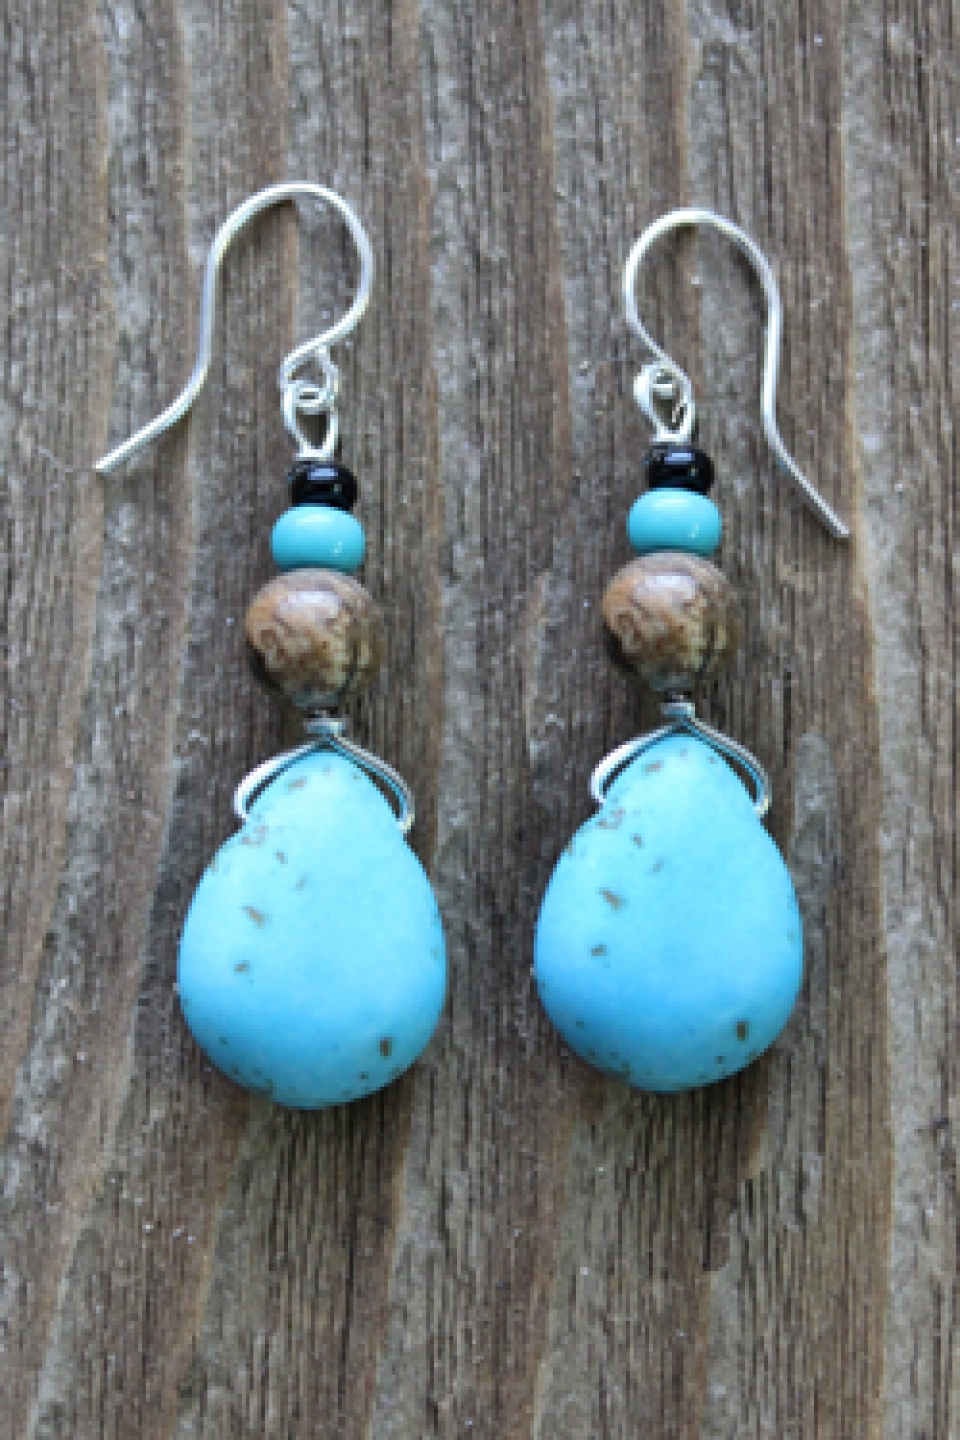 reflective earrings handcrafted kamala jewelry